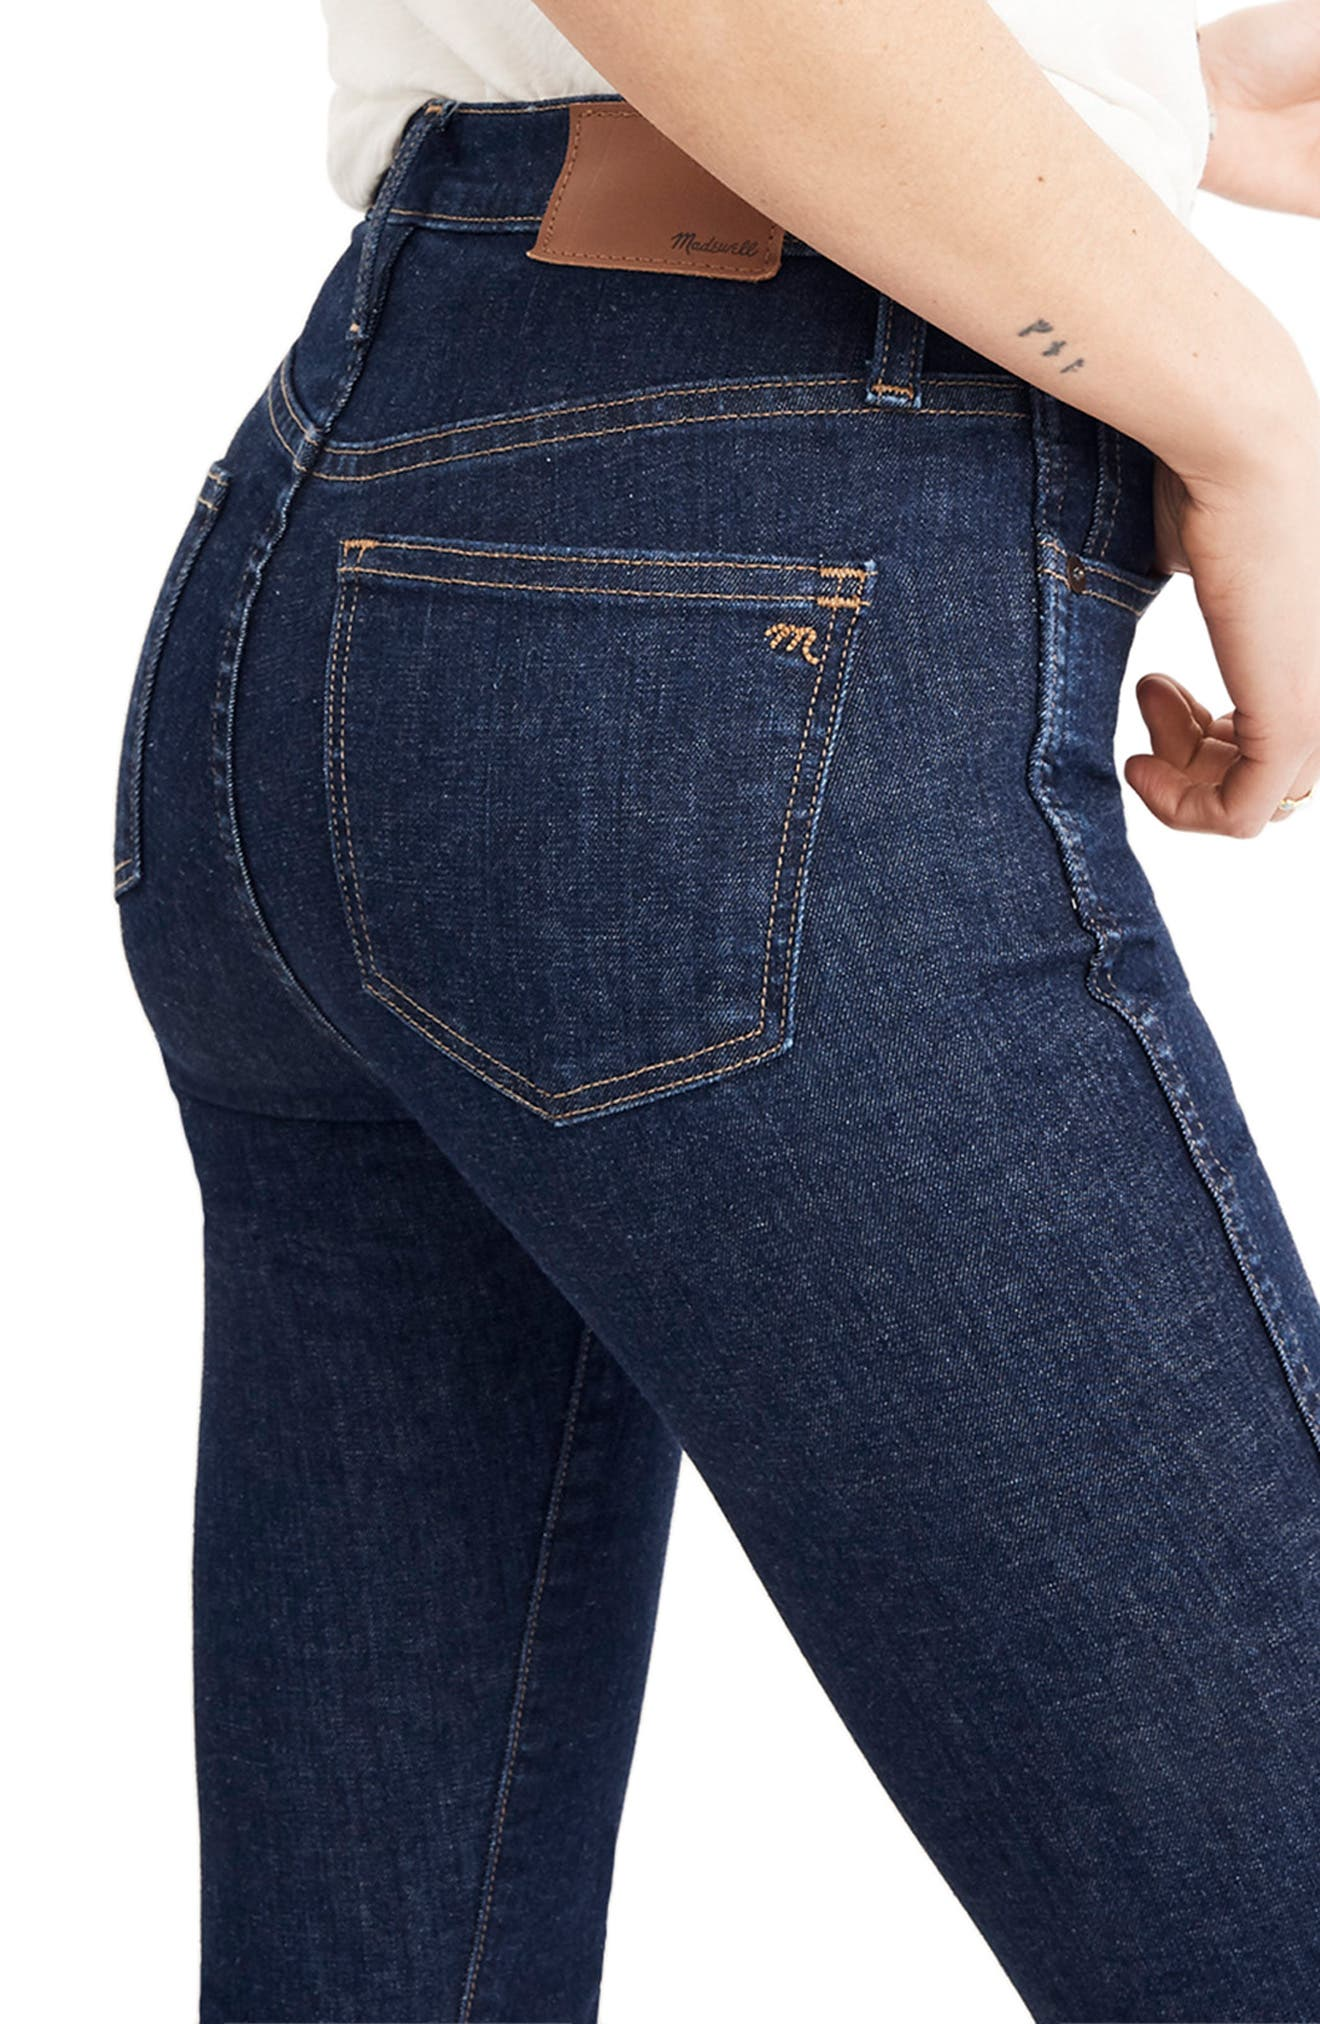 10-Inch High Waist Skinny Jeans,                             Alternate thumbnail 6, color,                             400